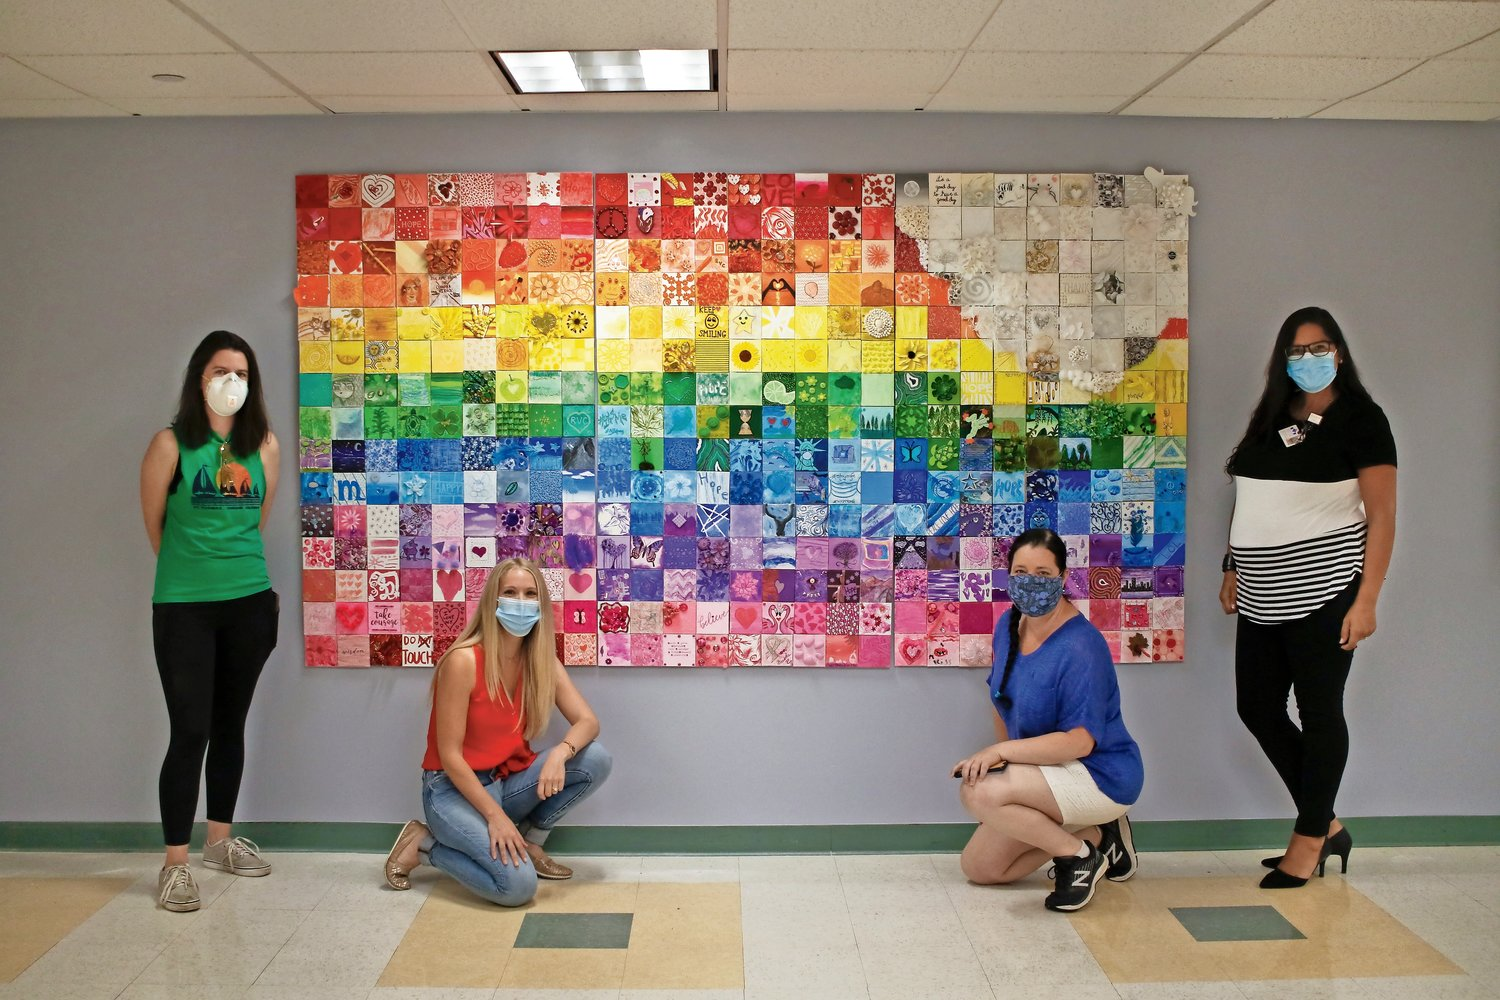 In July, the Support for Local Everything Facebook group teamed up with Hue art studio to put together a rainbow mural, above, that now hangs in the cafeteria at Mercy Hospital. From left were Kristen Conaty, Laura Montaruli, Michele James Wettstein and Alida Almonte-Giannini.